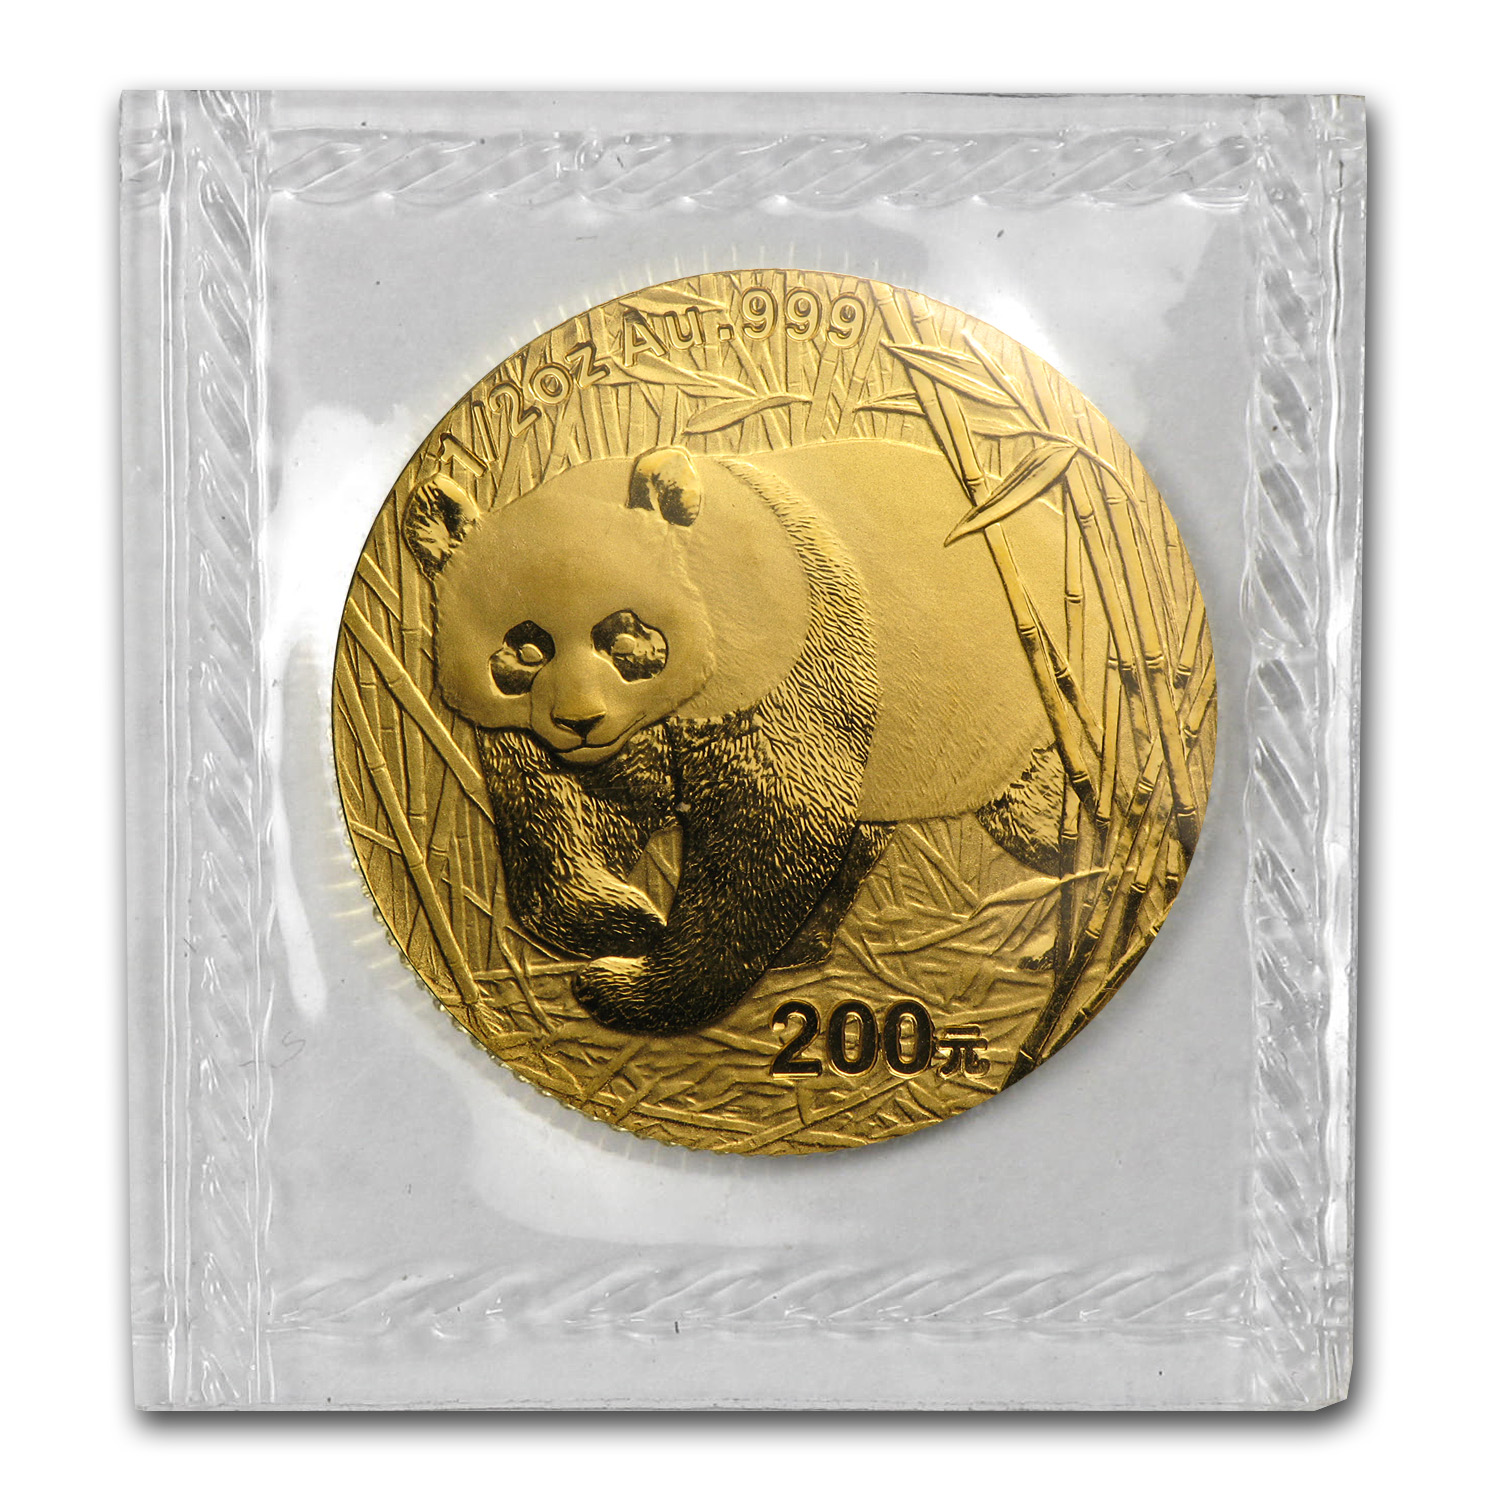 2002 China 1/2 oz Gold Panda BU (Sealed)